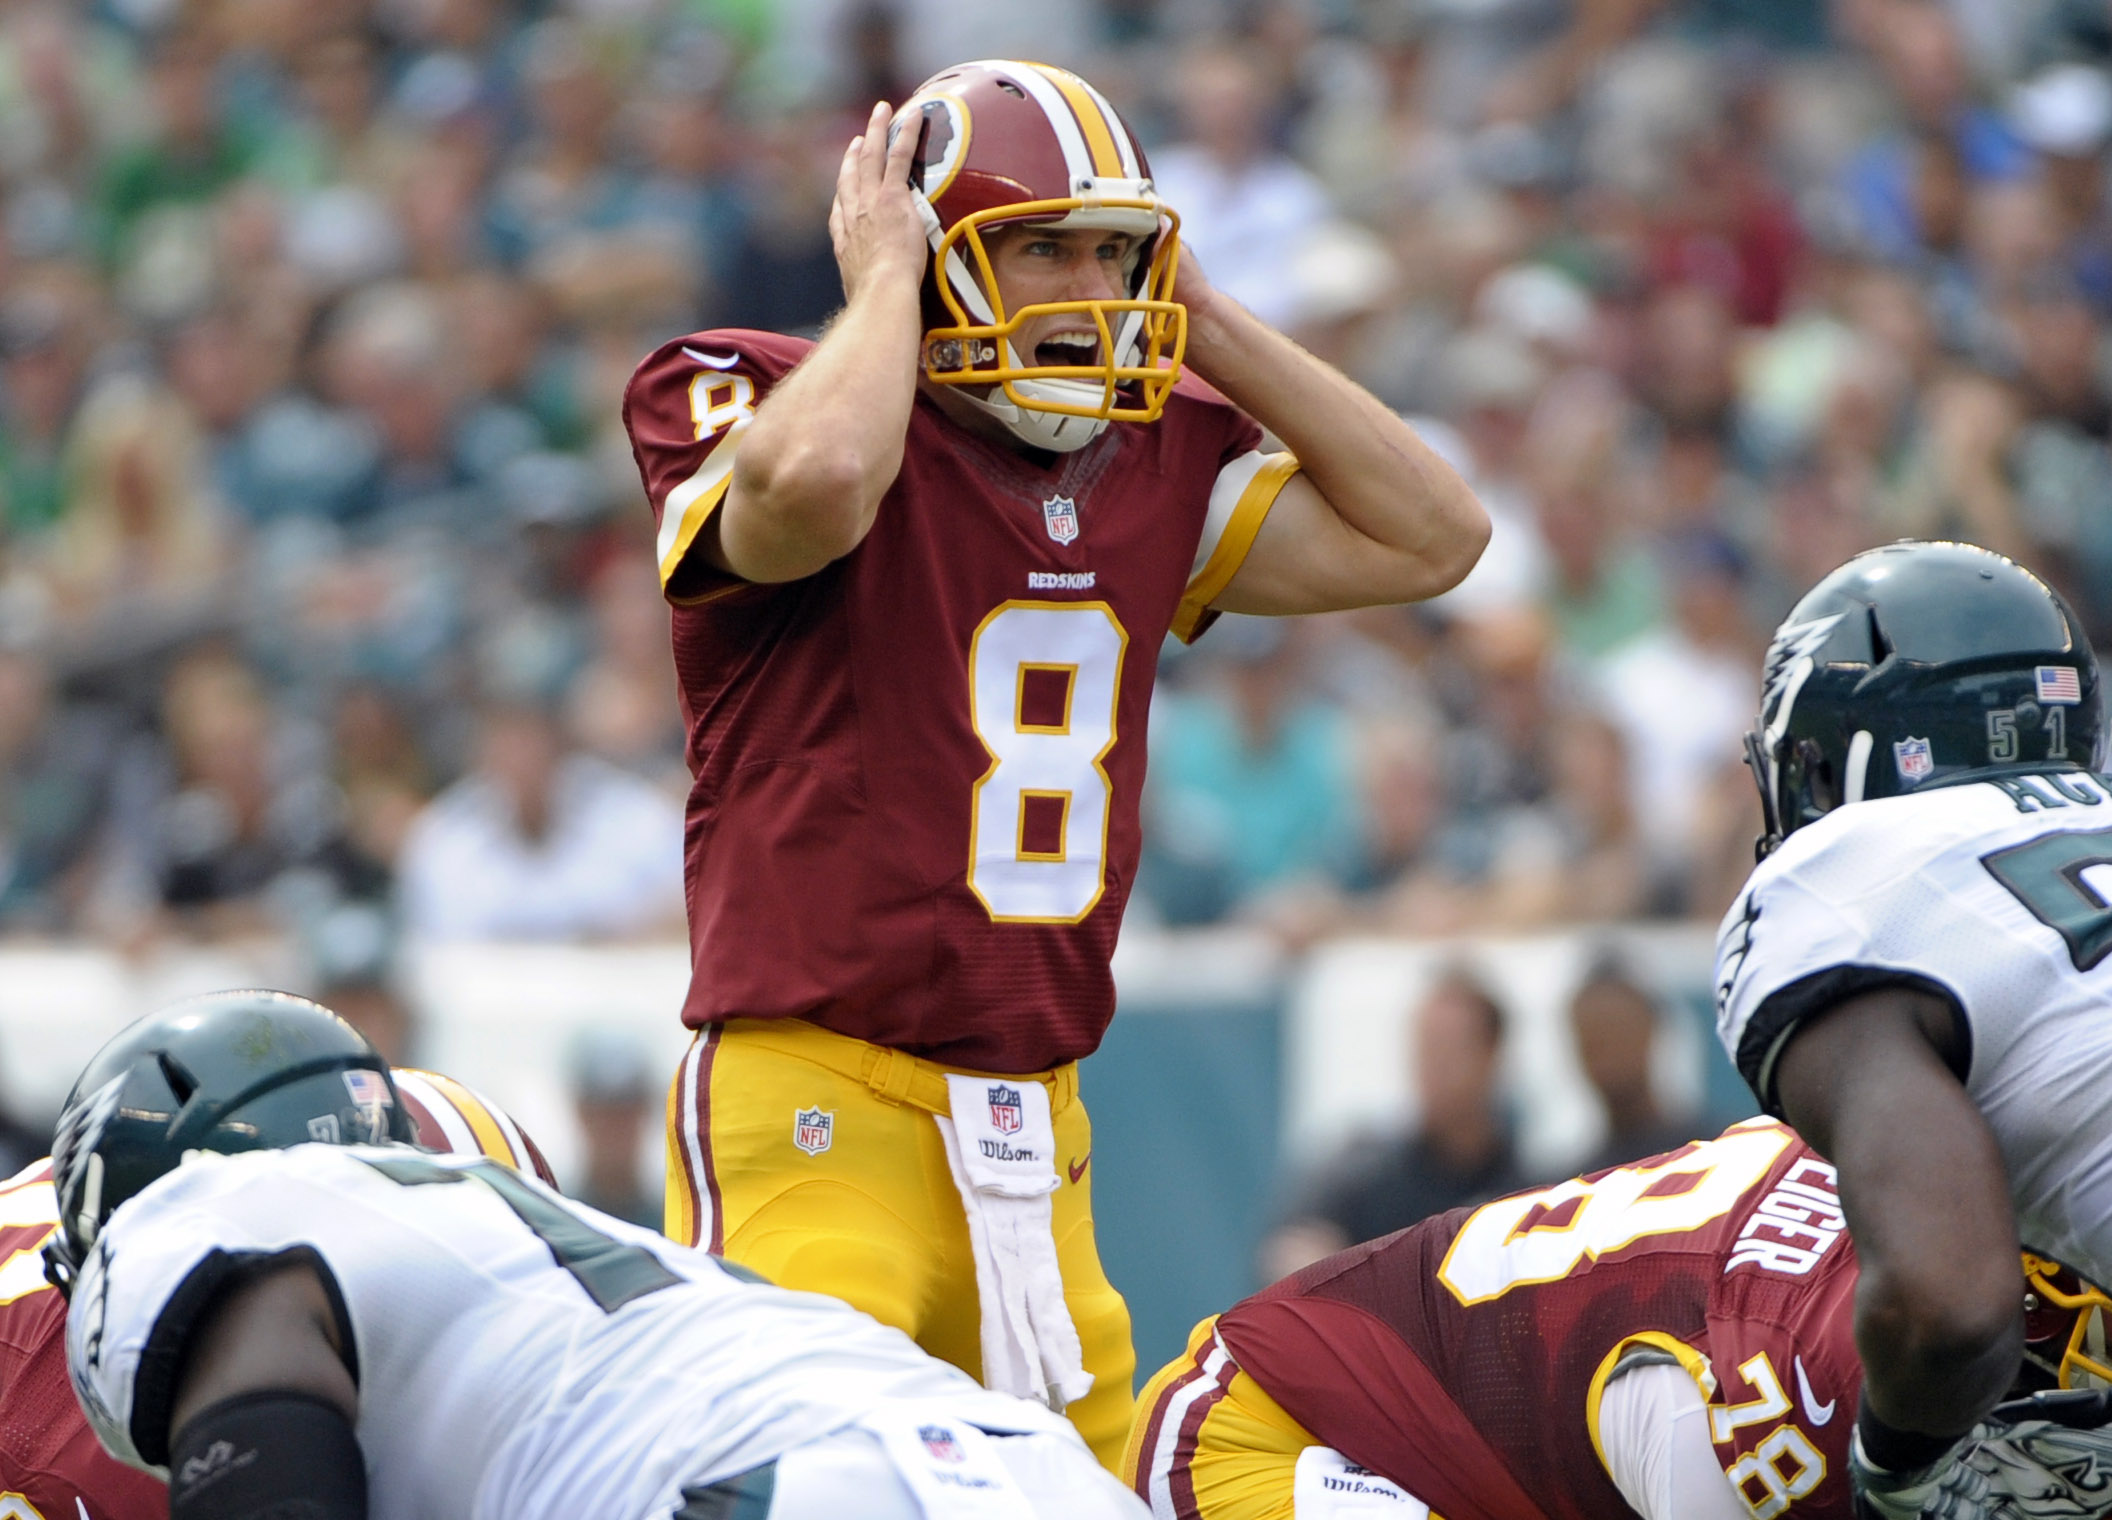 Redskins QB Kirk Cousins passed for 427 yards and three TDs last time he faced the Eagles. (Eric Hartline, USA TODAY Sports)